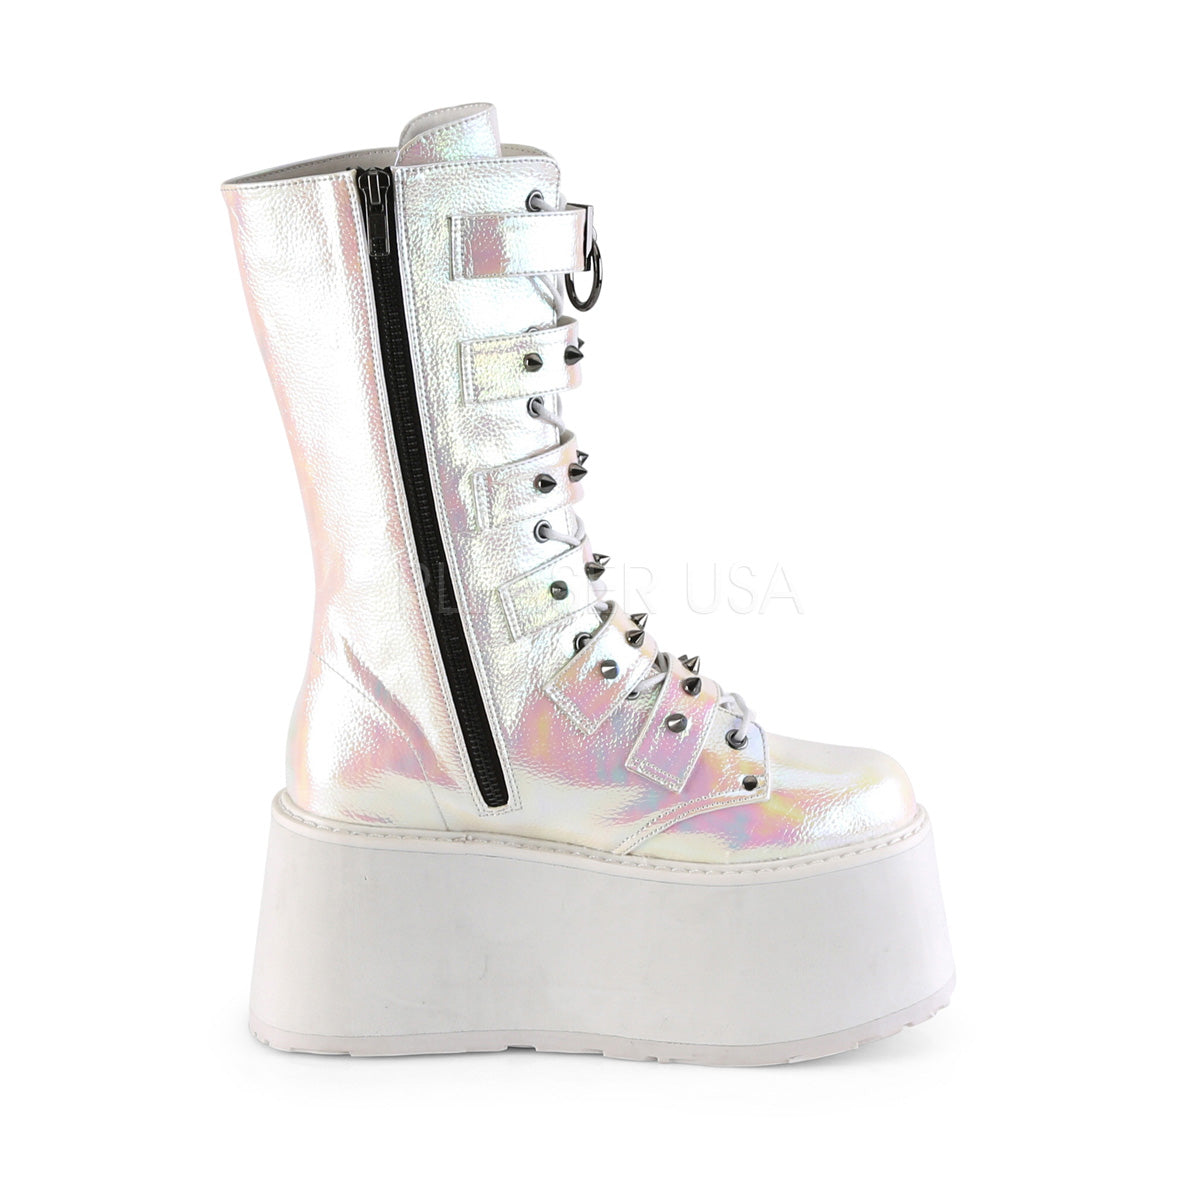 DAMNED-225 Pearl Iridescent Vegan Leather